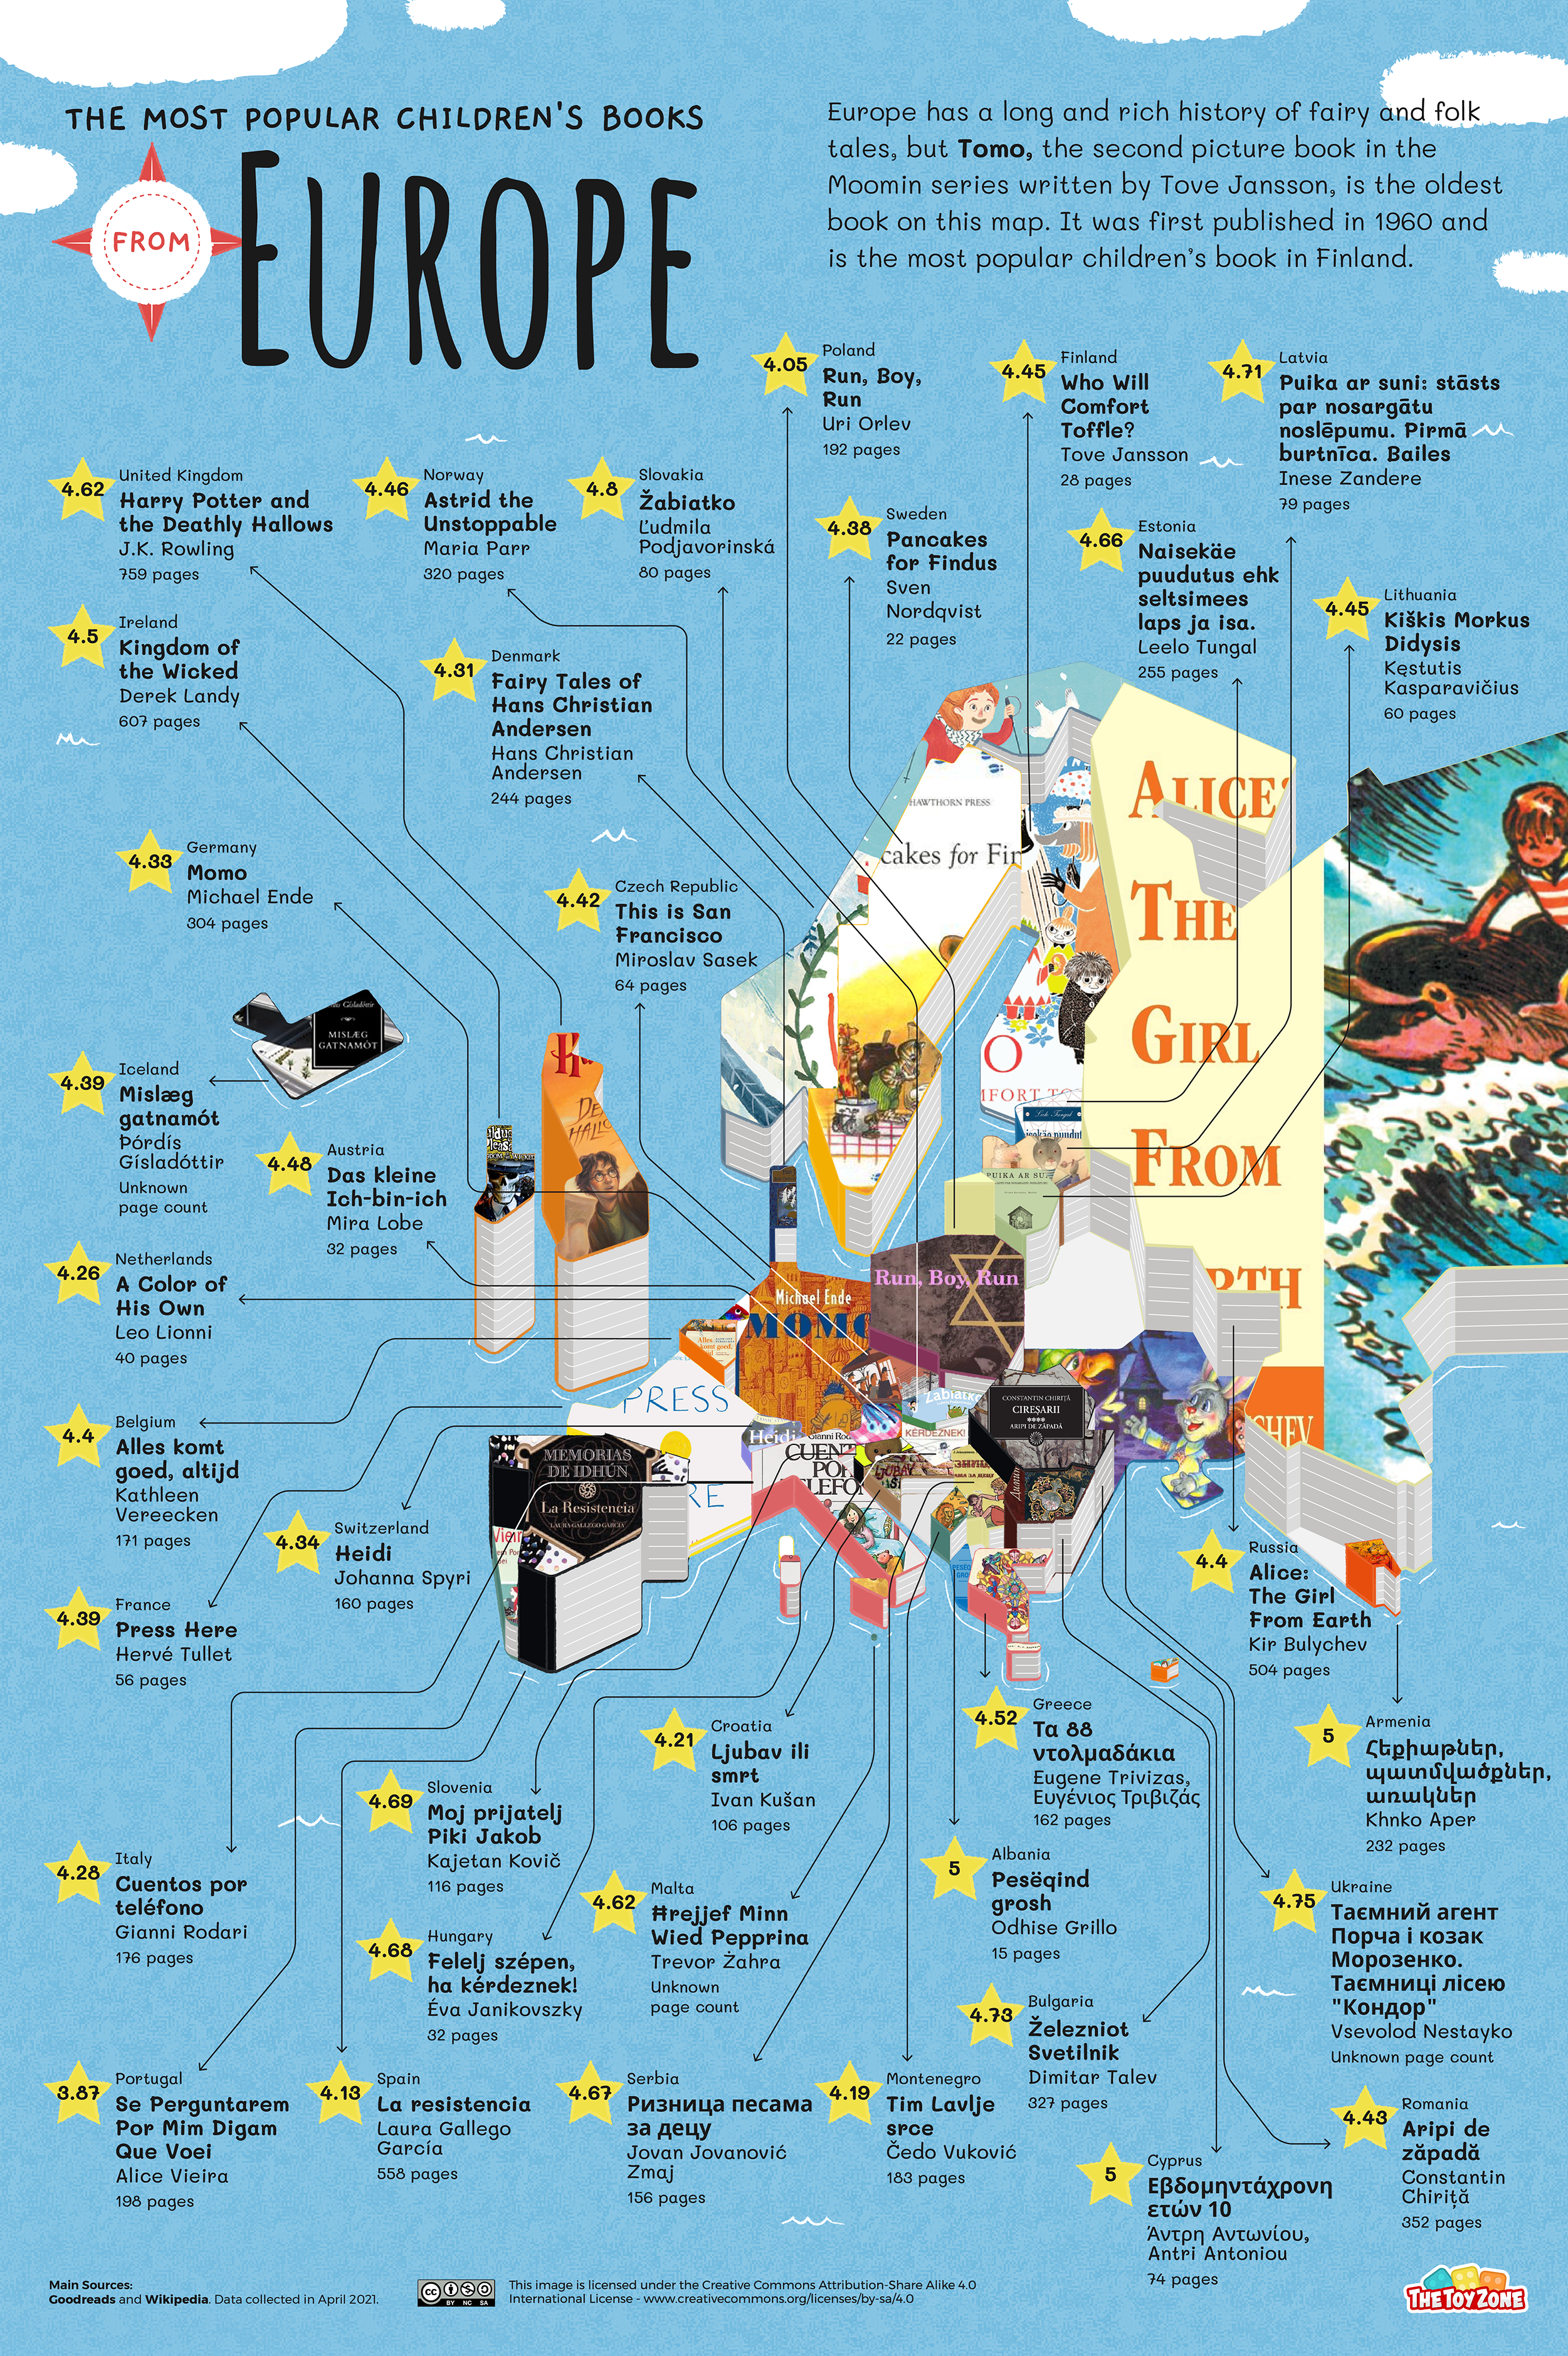 Most popular children's books in Europe map